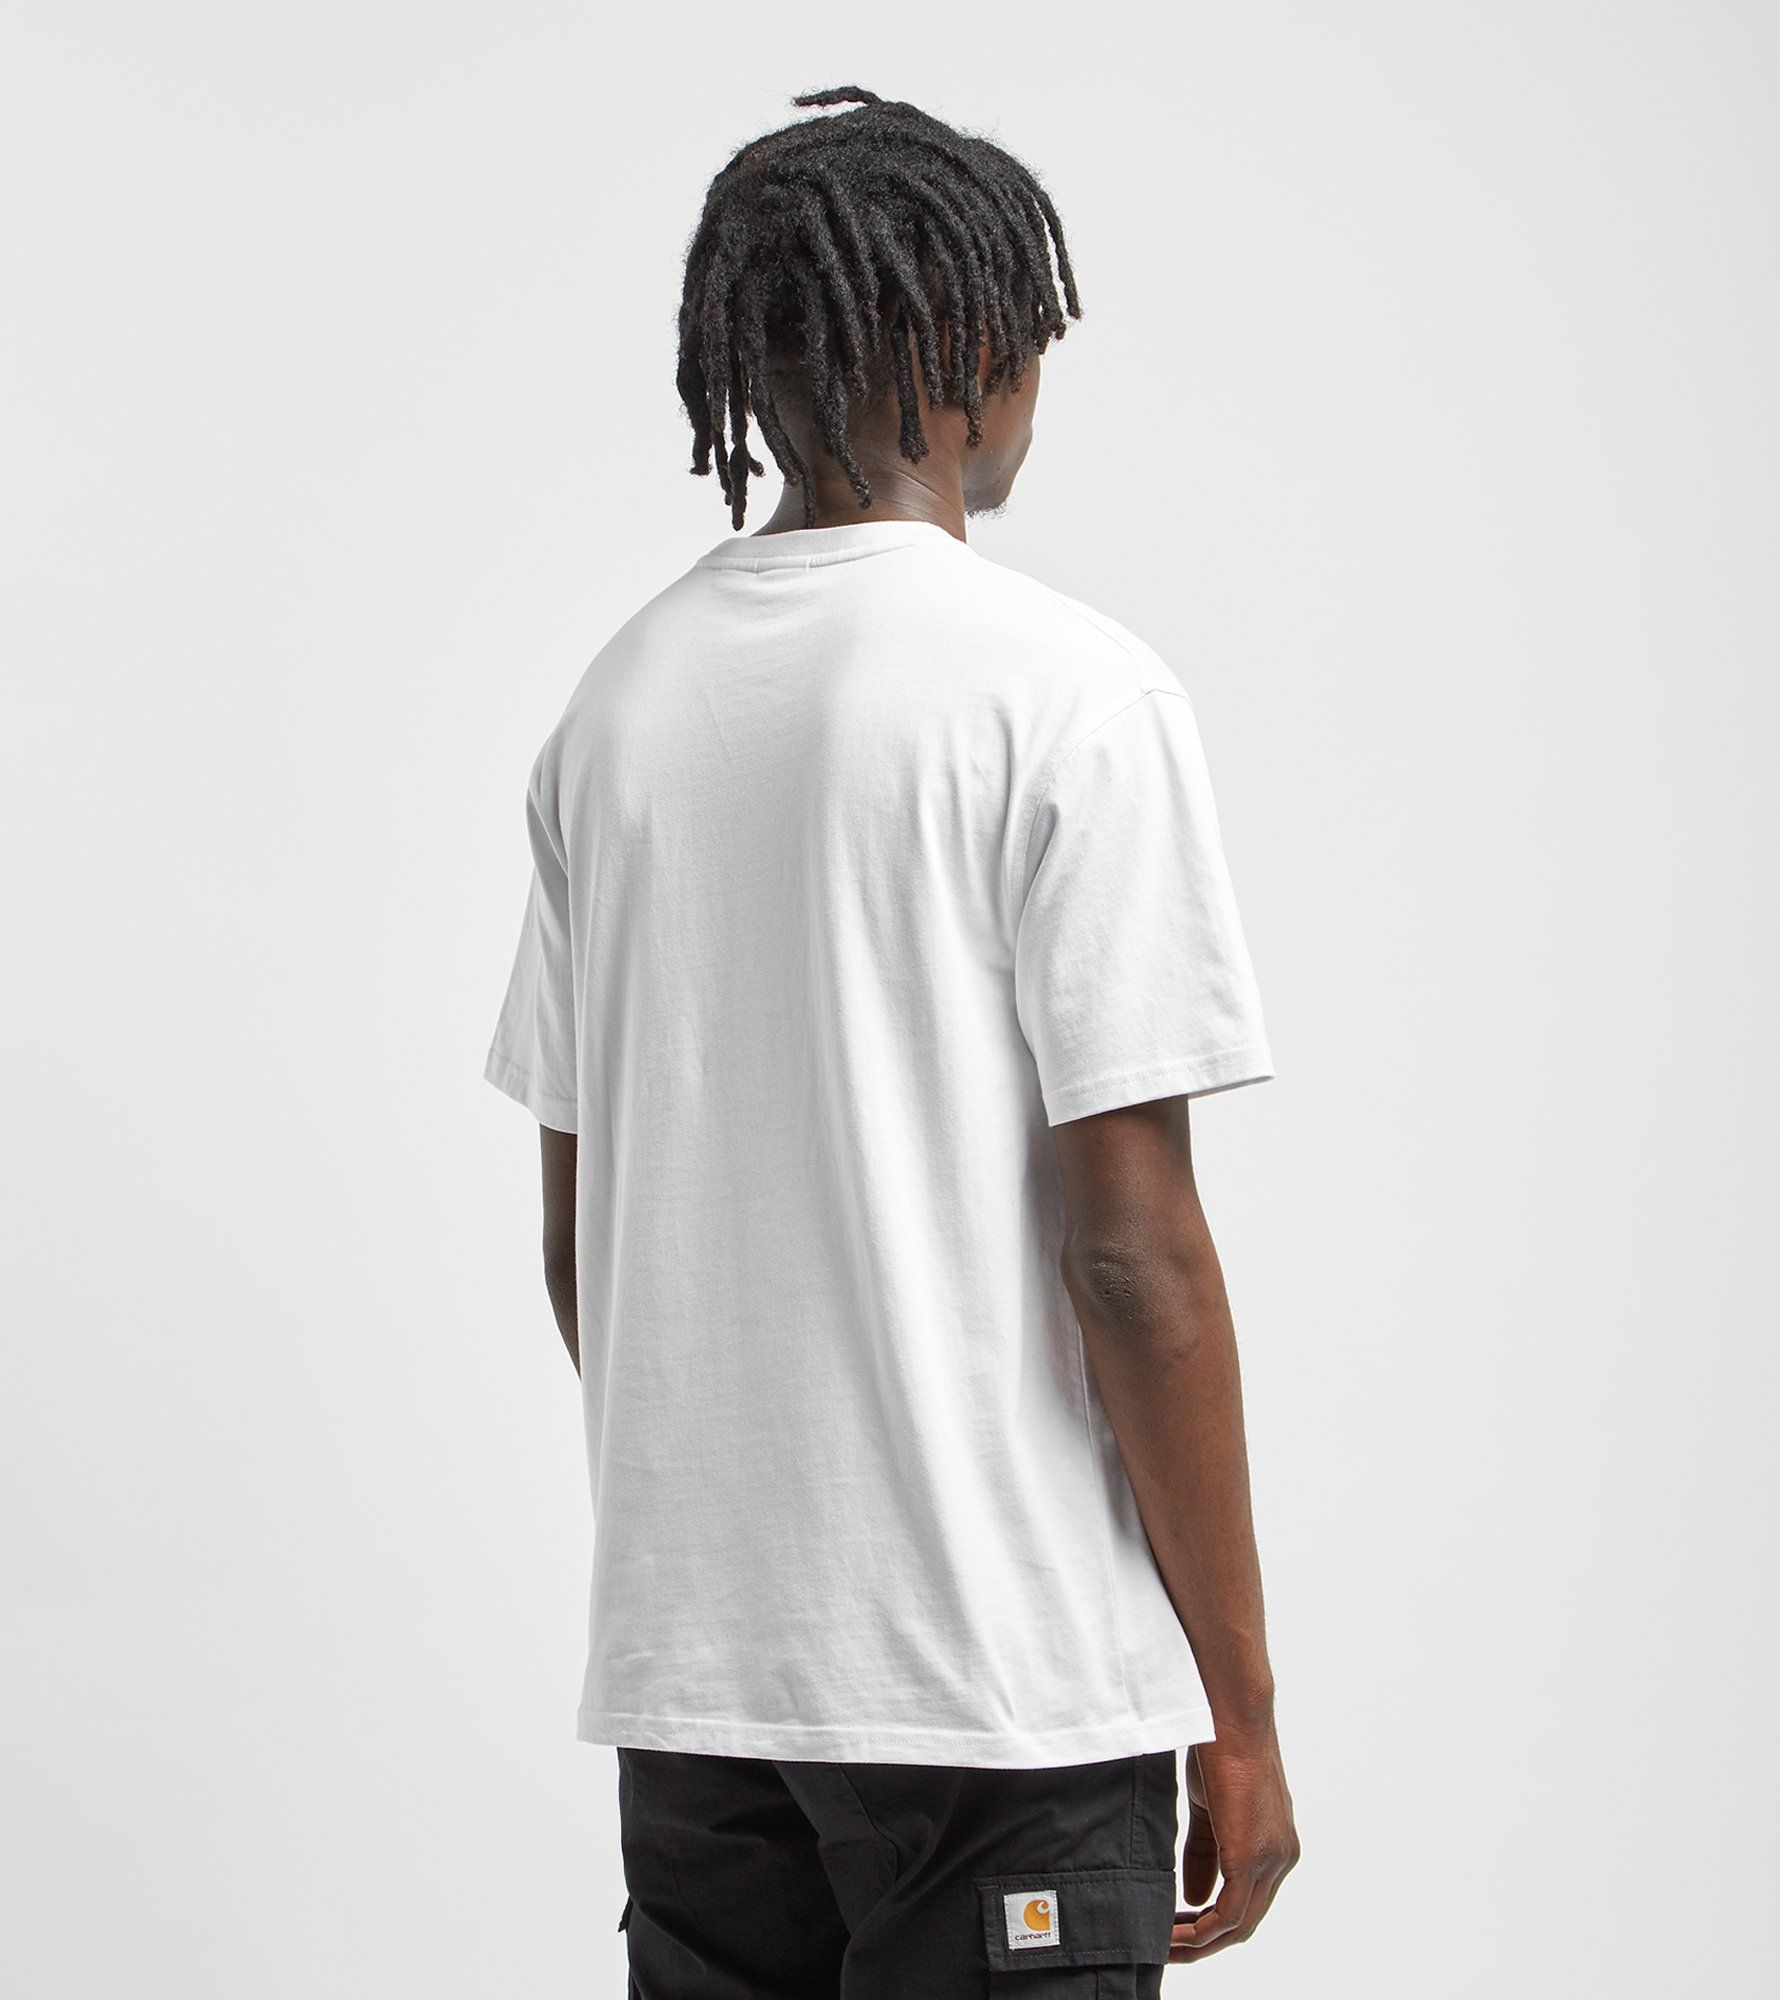 Fila Diagonal T-Shirt - size? Exclusive